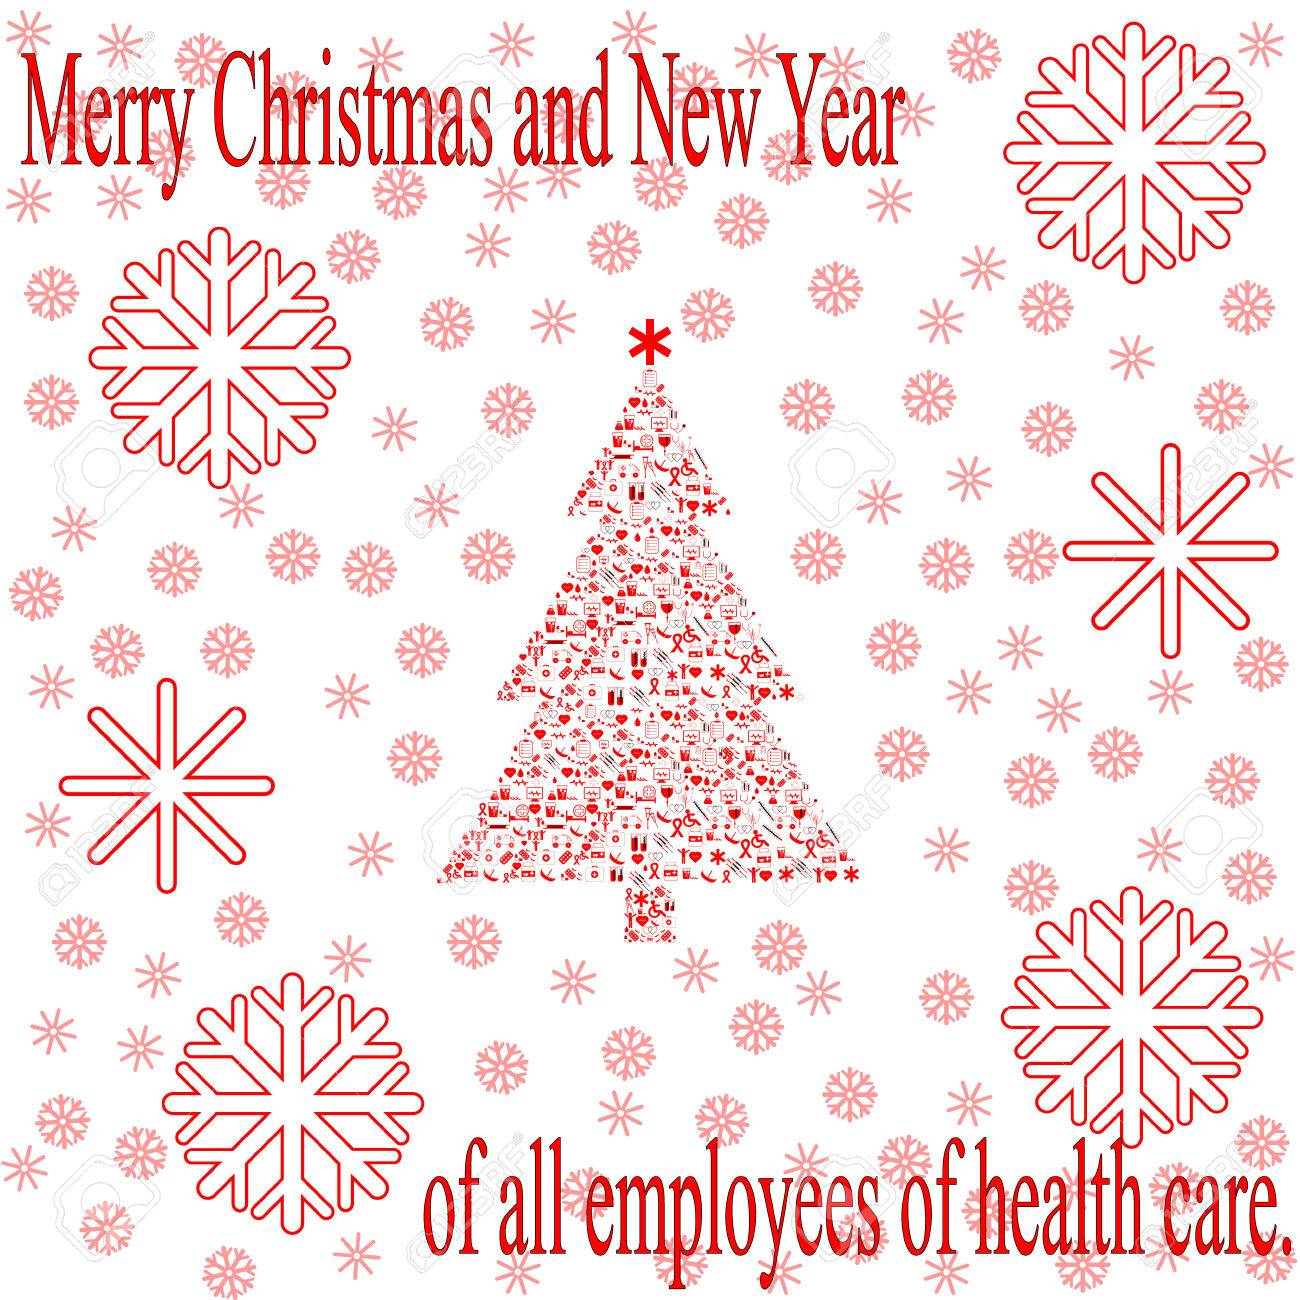 Greeting Christmas Card For Employees Of Health Care Royalty Free